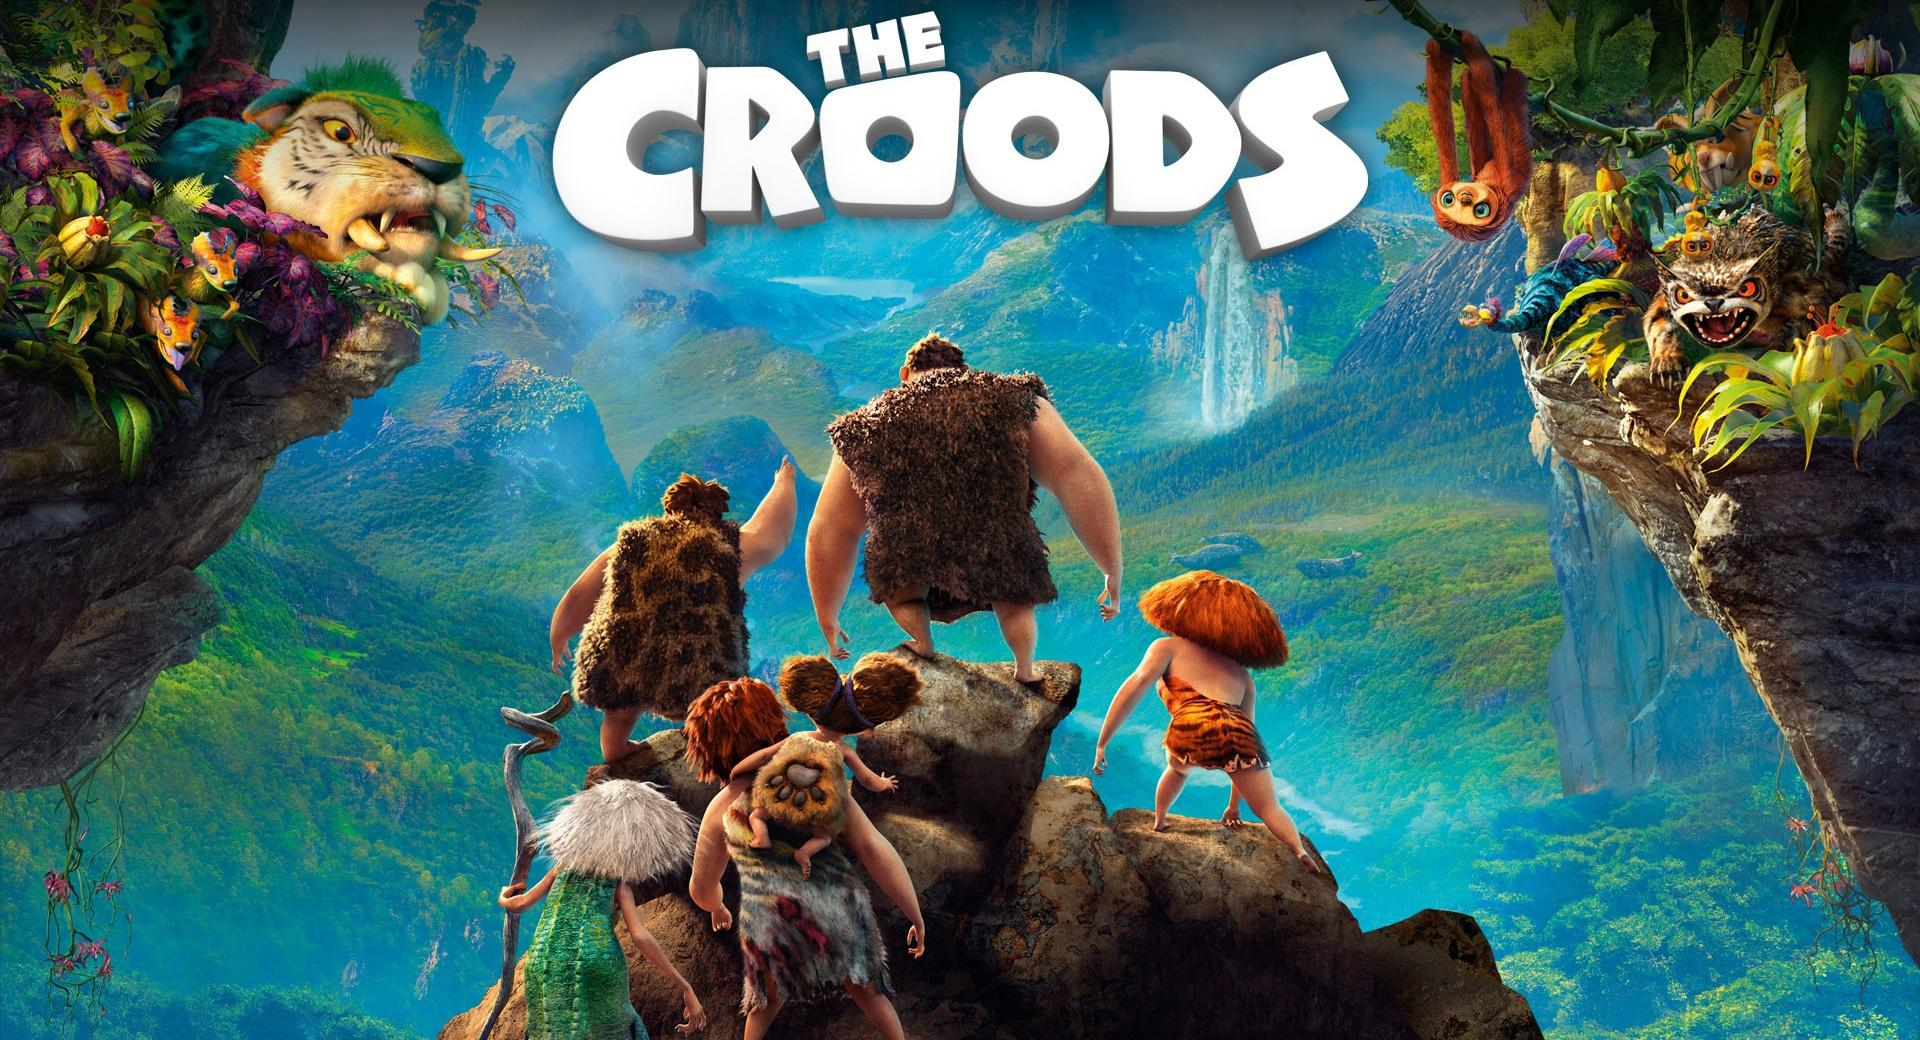 The Croods (2013) wallpapers HD quality